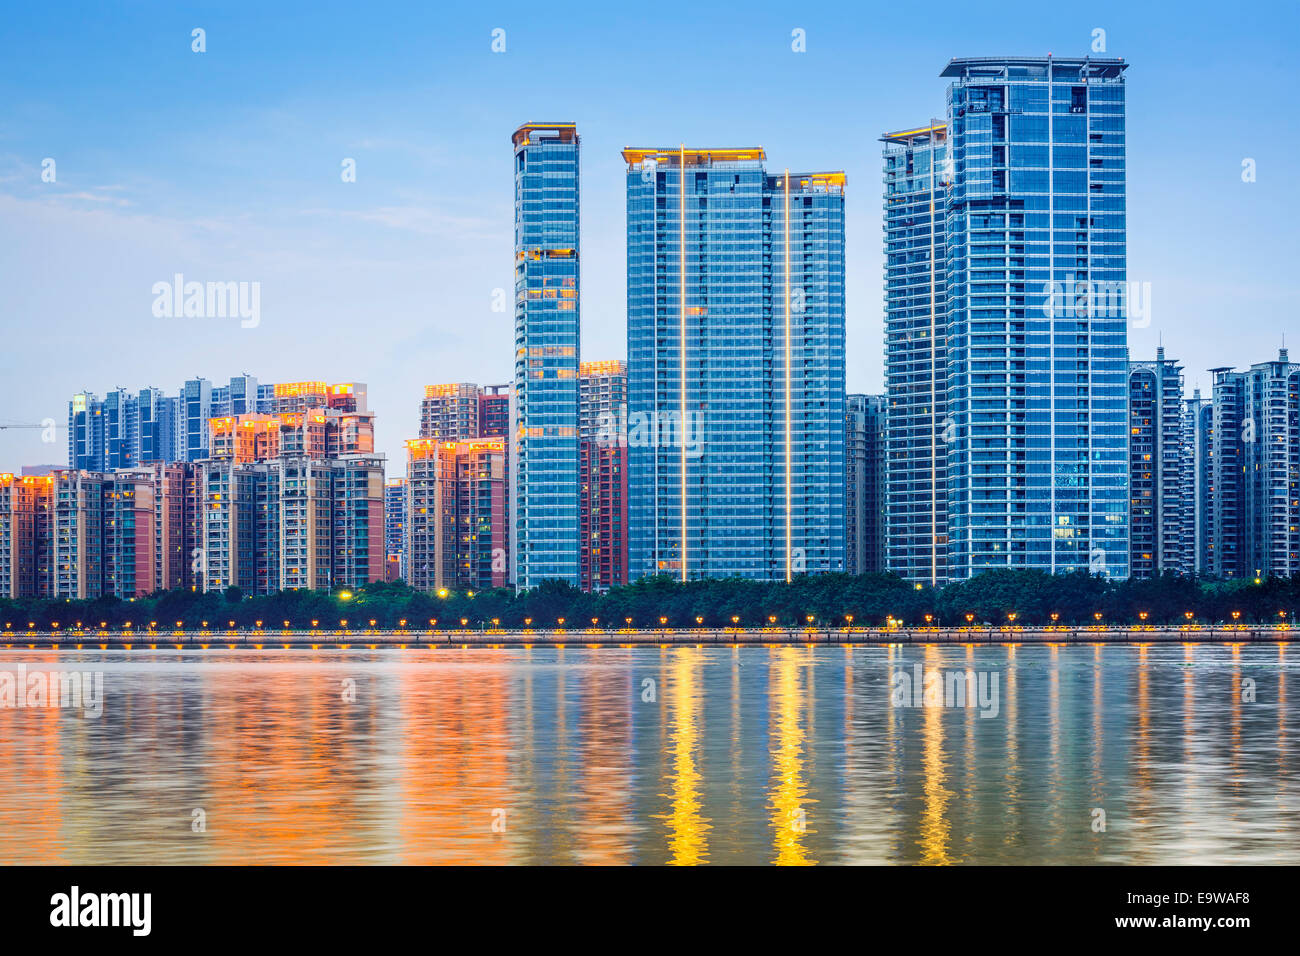 Guangzhou, China modern architecture along the Pearl River. - Stock Image